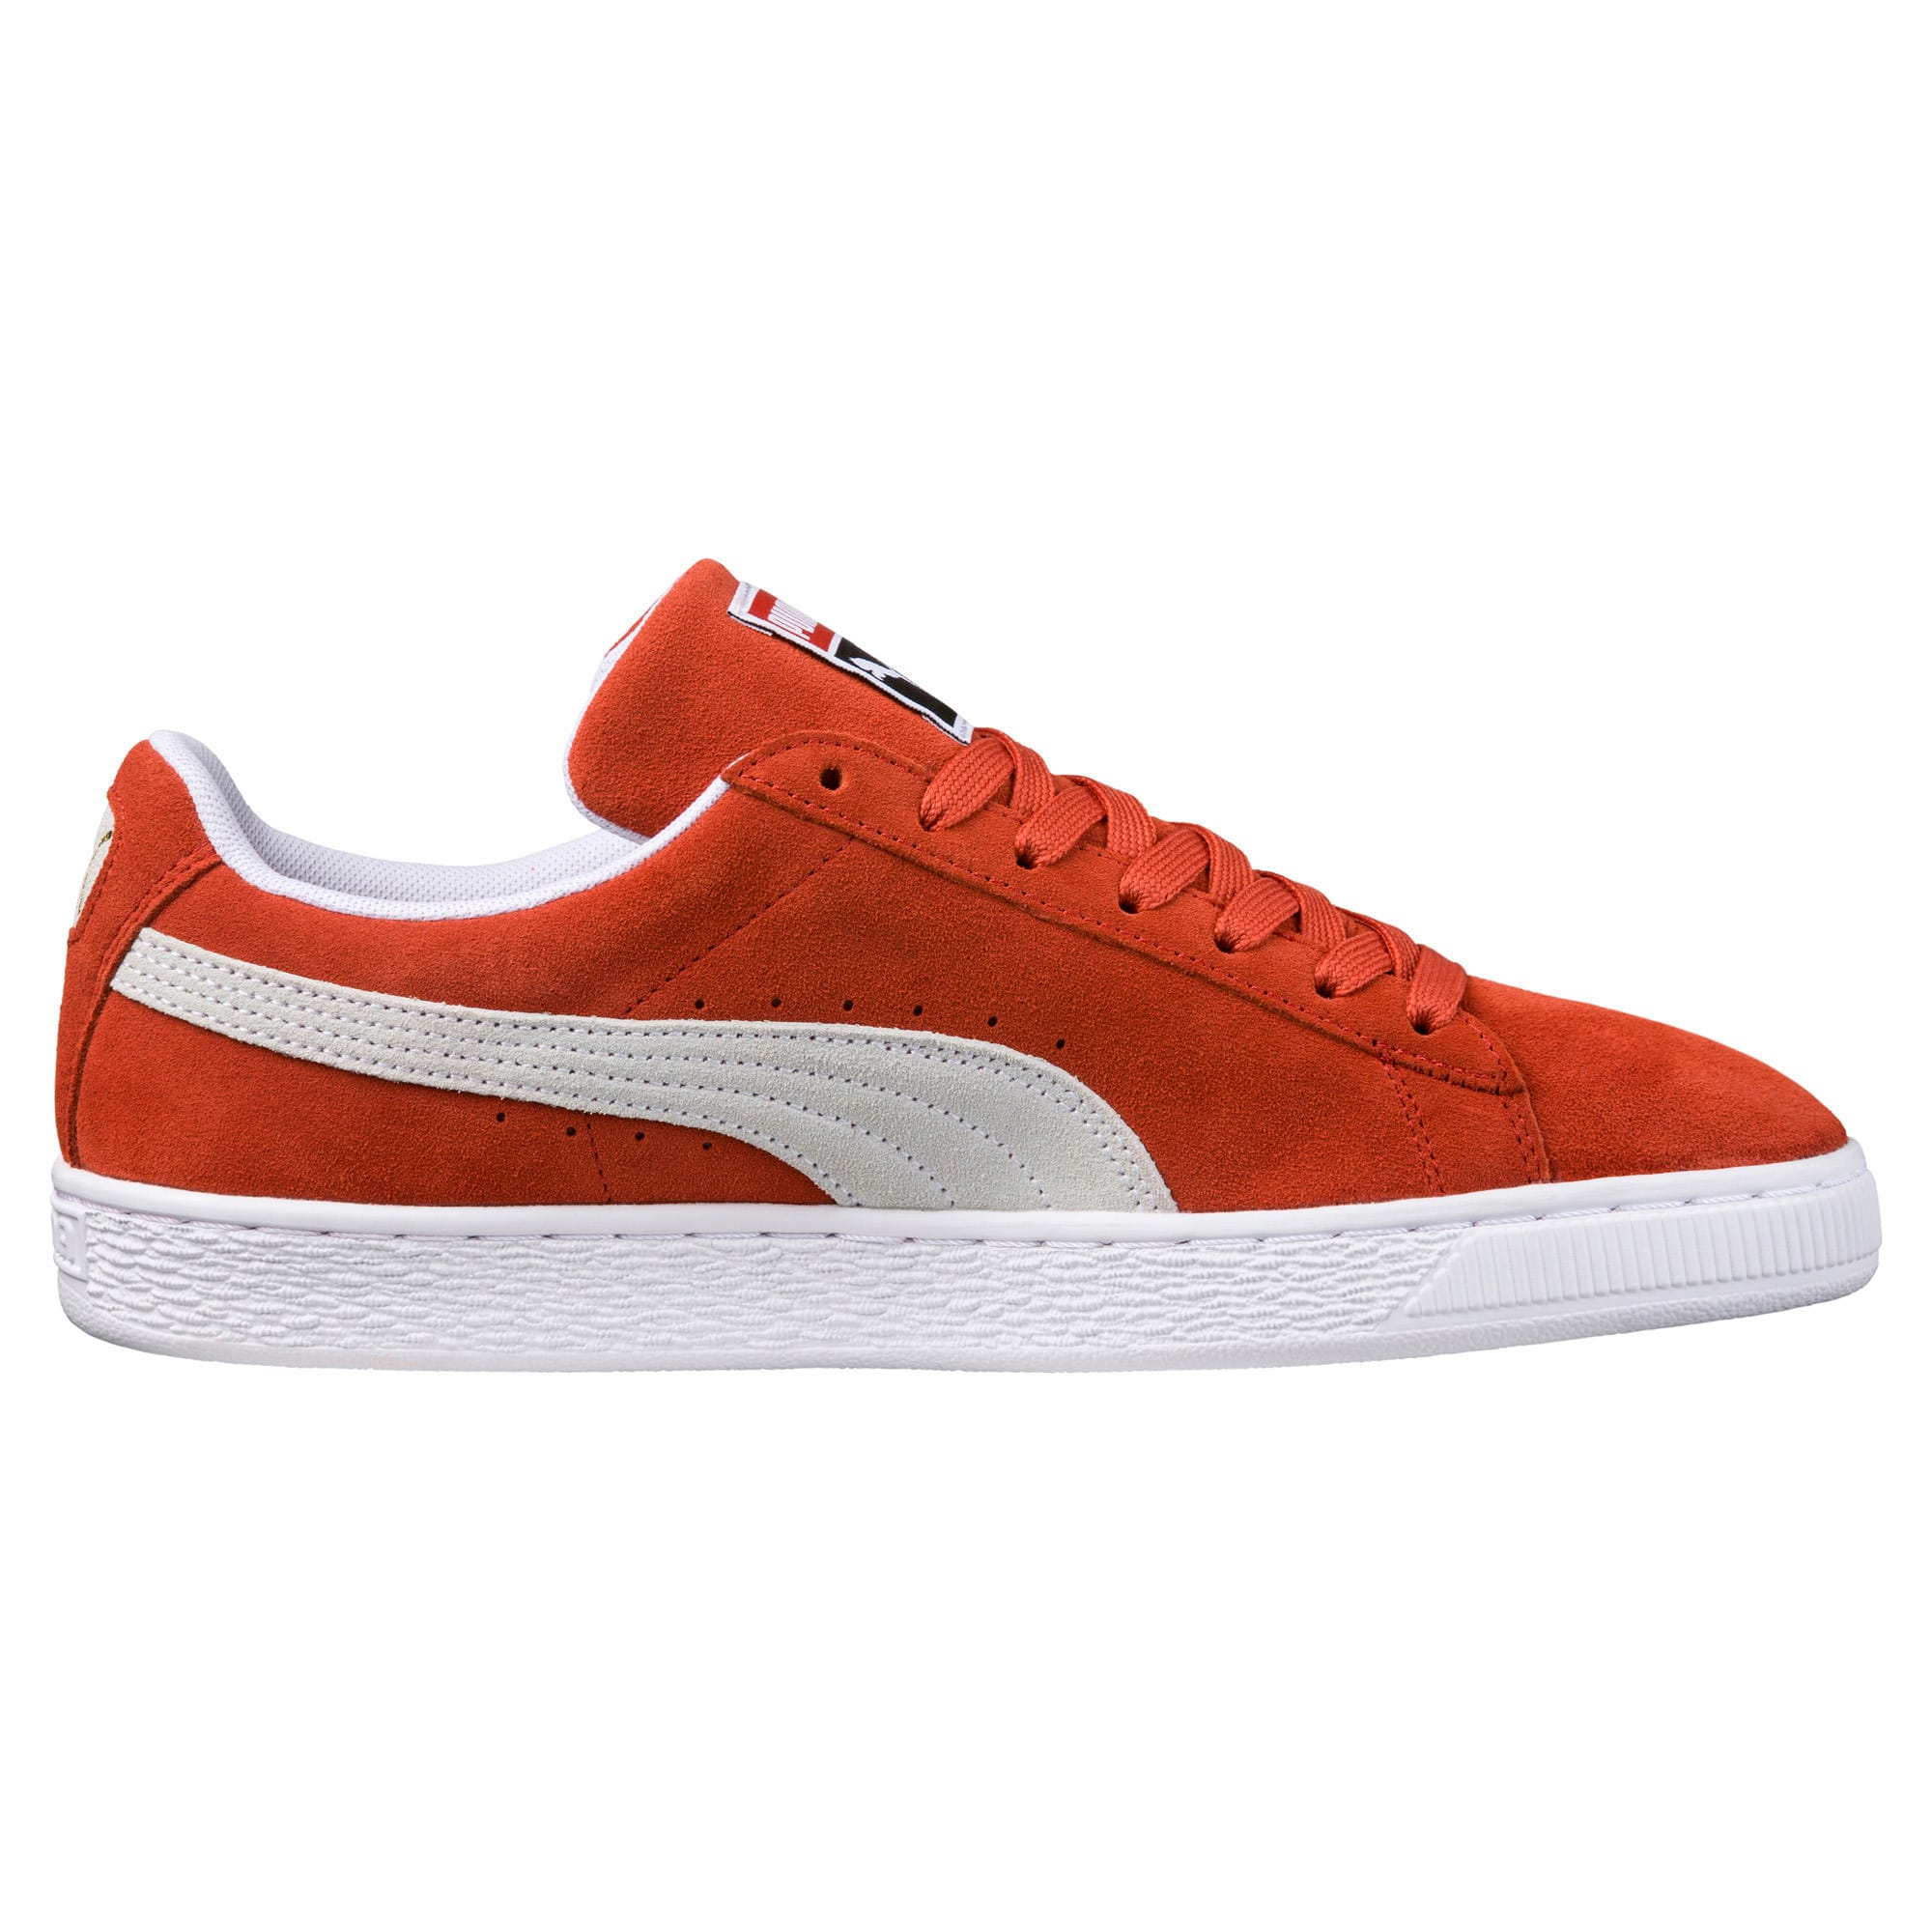 Thumbnail 3 of Suede Classic Trainers, Burnt Ochre-Puma White, medium-IND